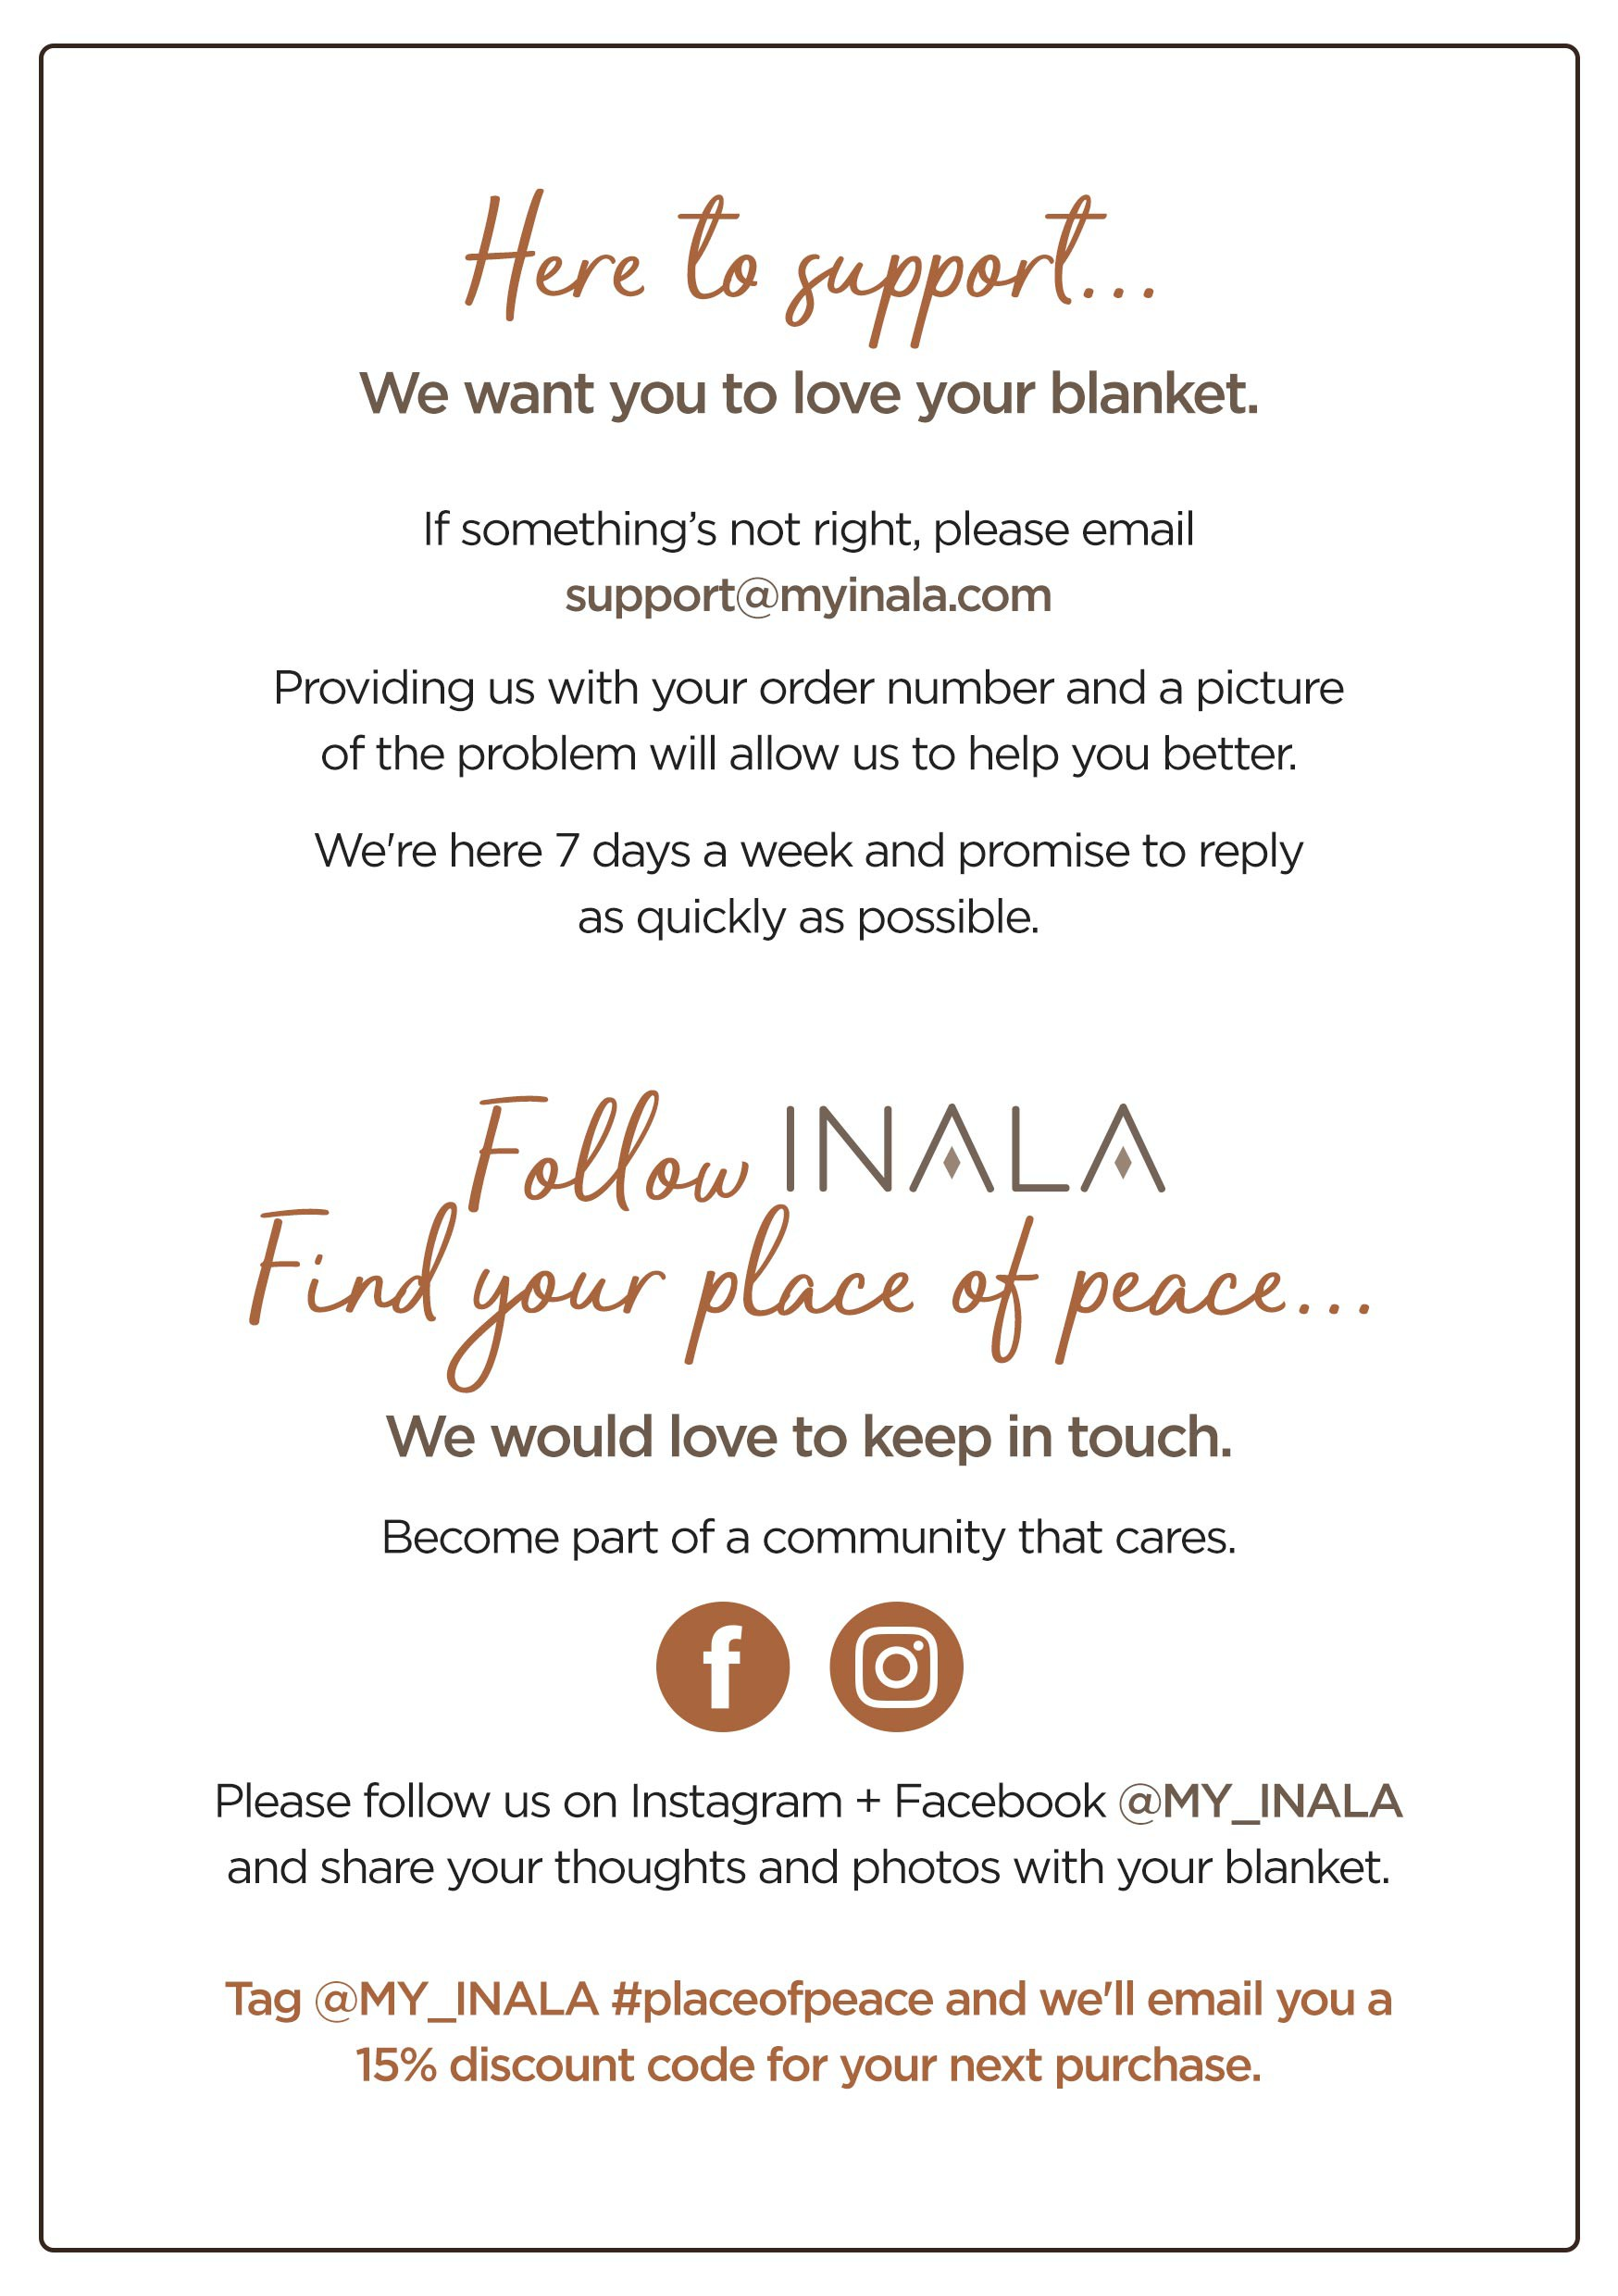 INALA Insert/Thank you Card